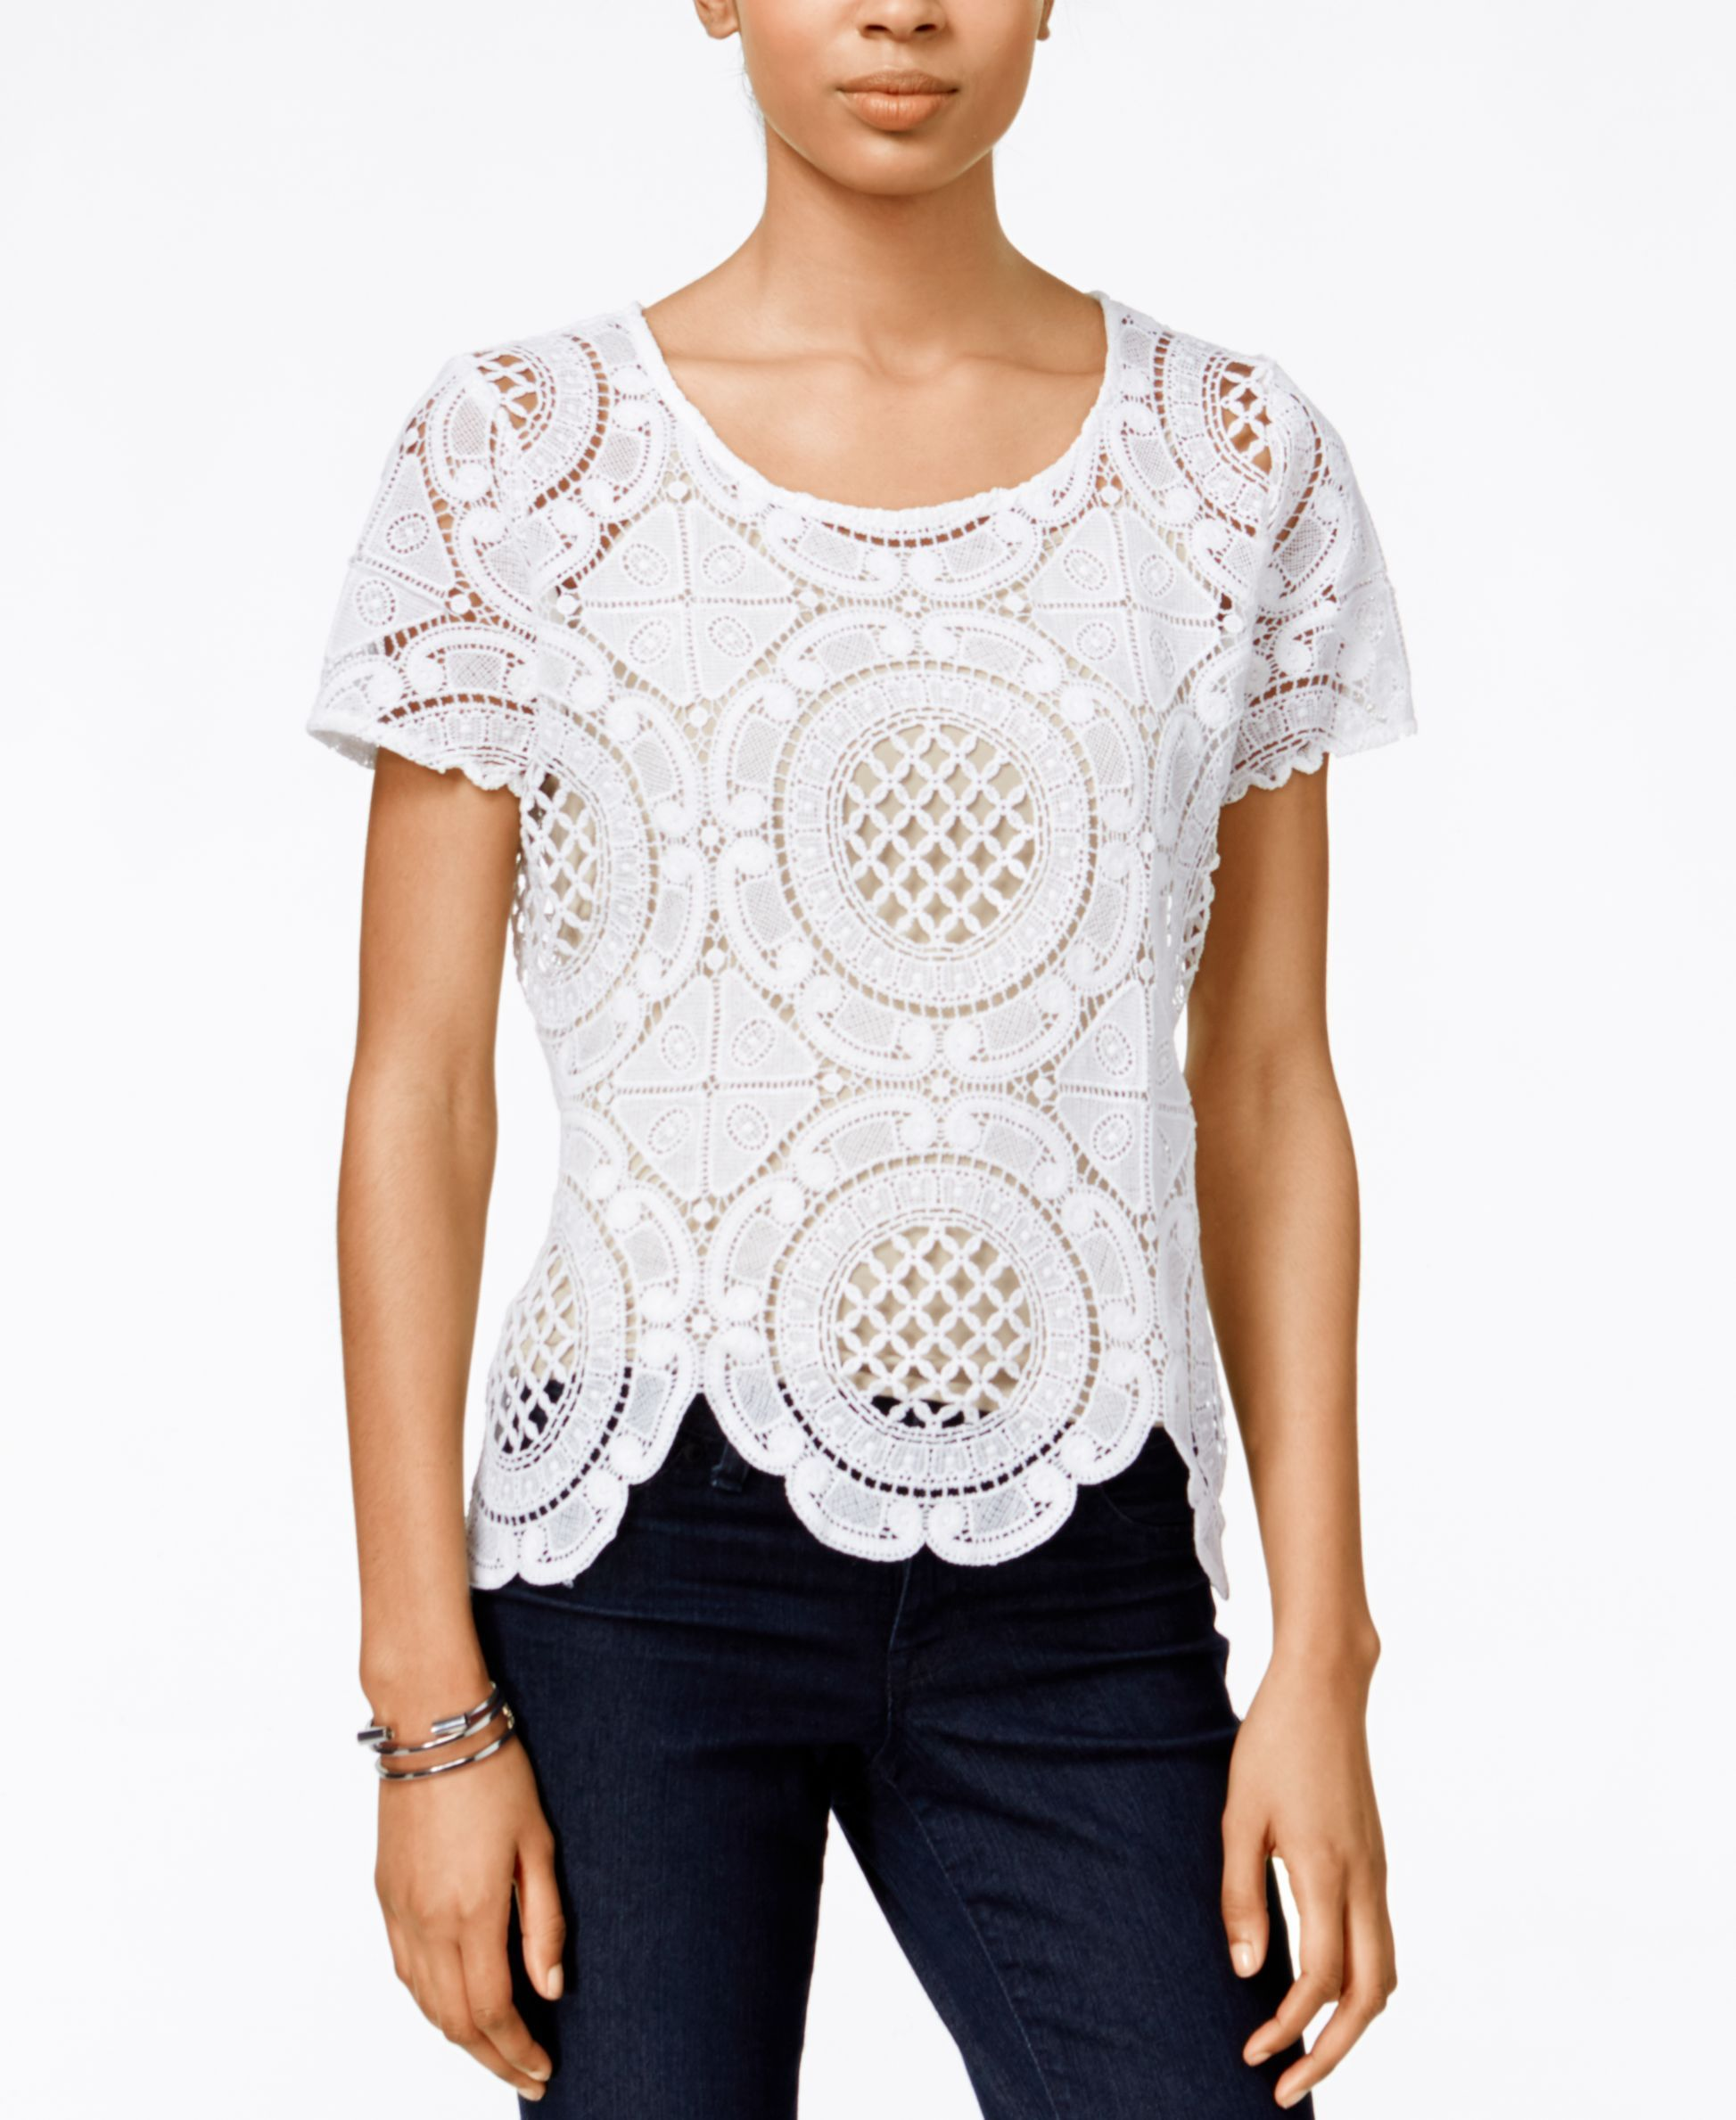 Bar Iii Short-Sleeve Crocheted Top, Only at Macy's